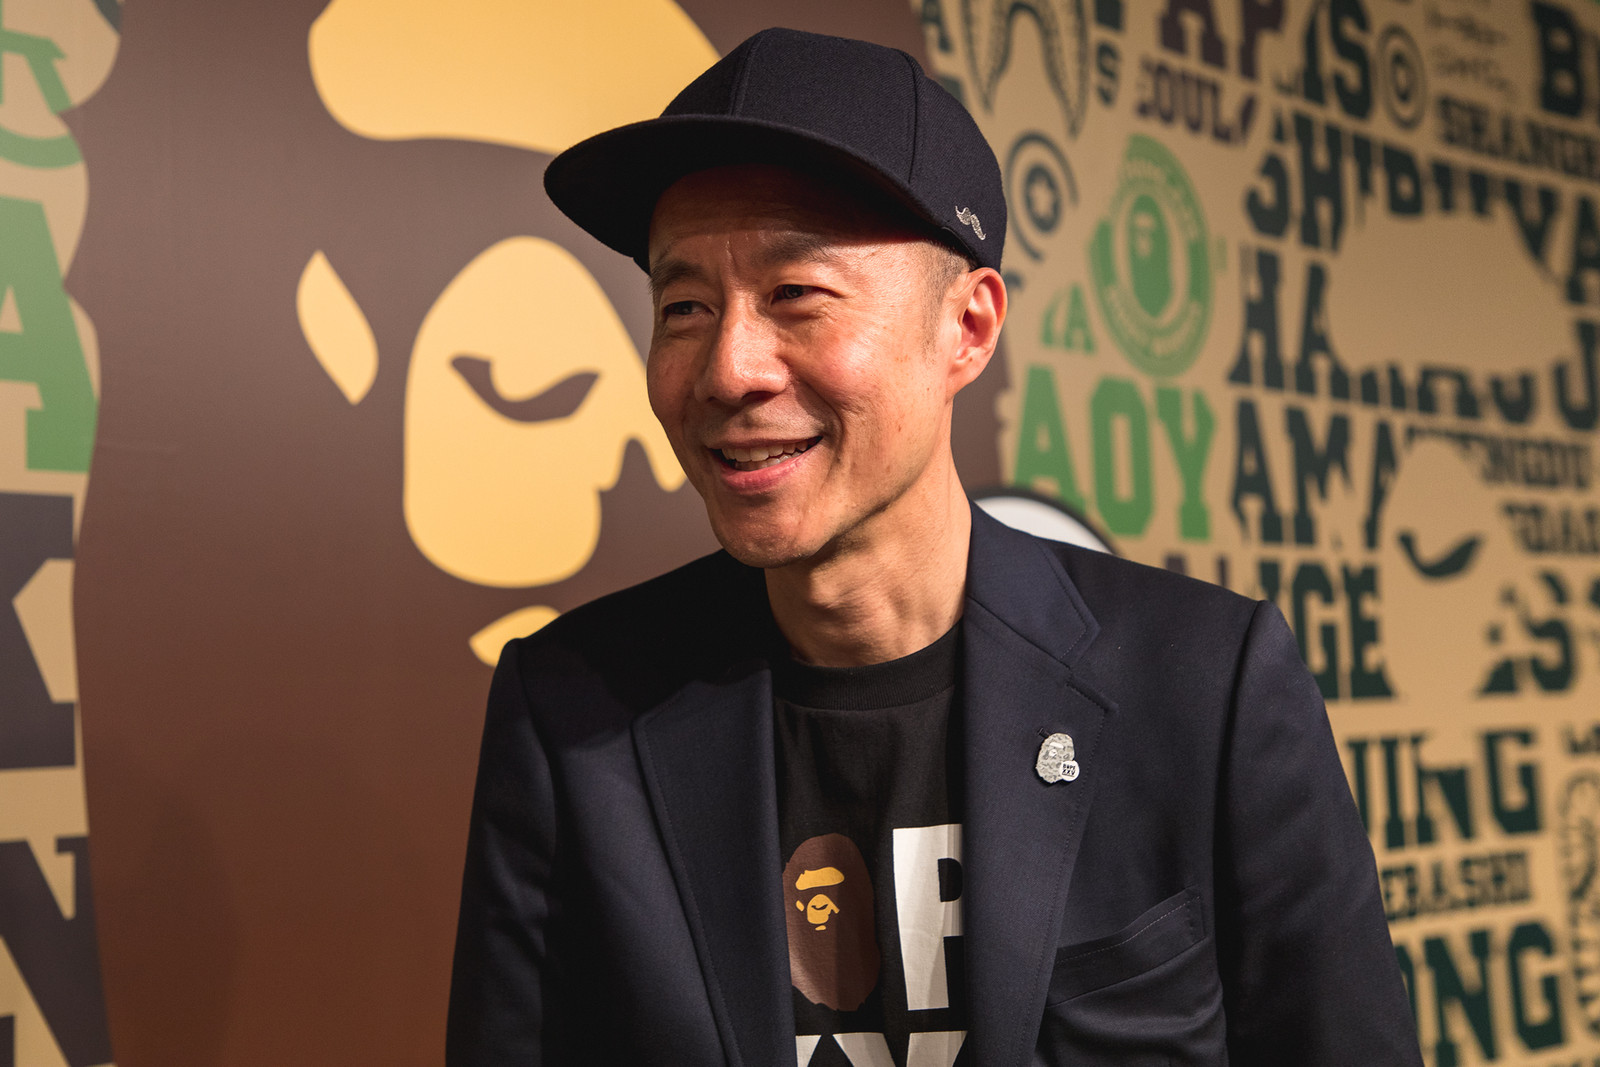 Sk8thing James Bond Stash BAPE's 25th Anniversary a bathing ape nigo streetwear tokyo japan ape shall never kill ape apes together strong interviews baby milo exhibitions